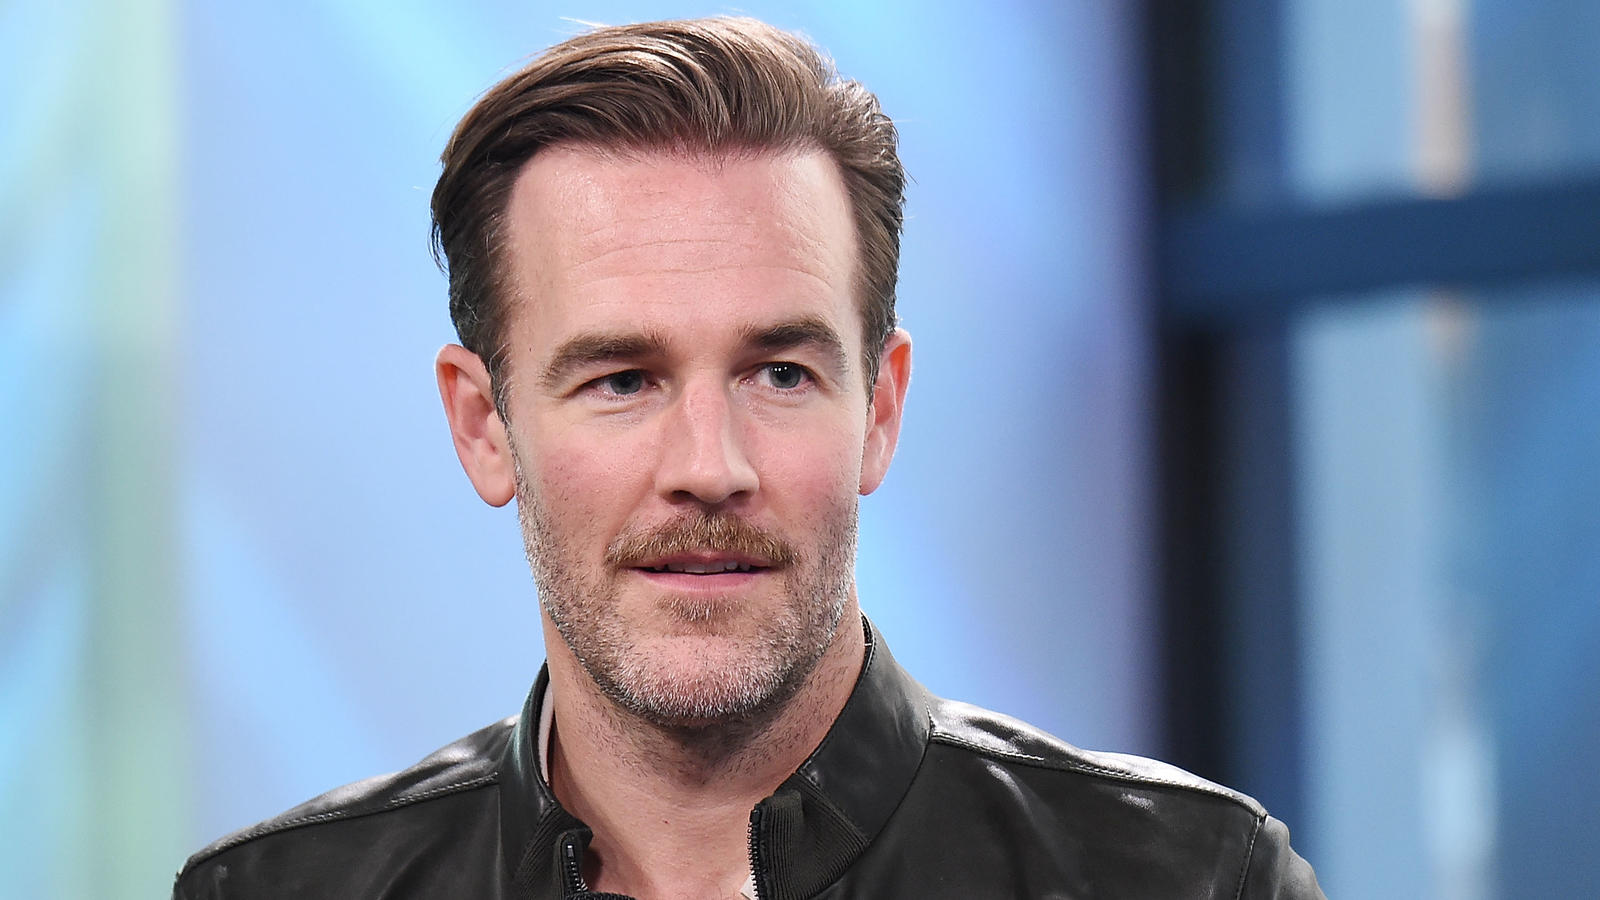 James Van der Beek 2017 in New York City.